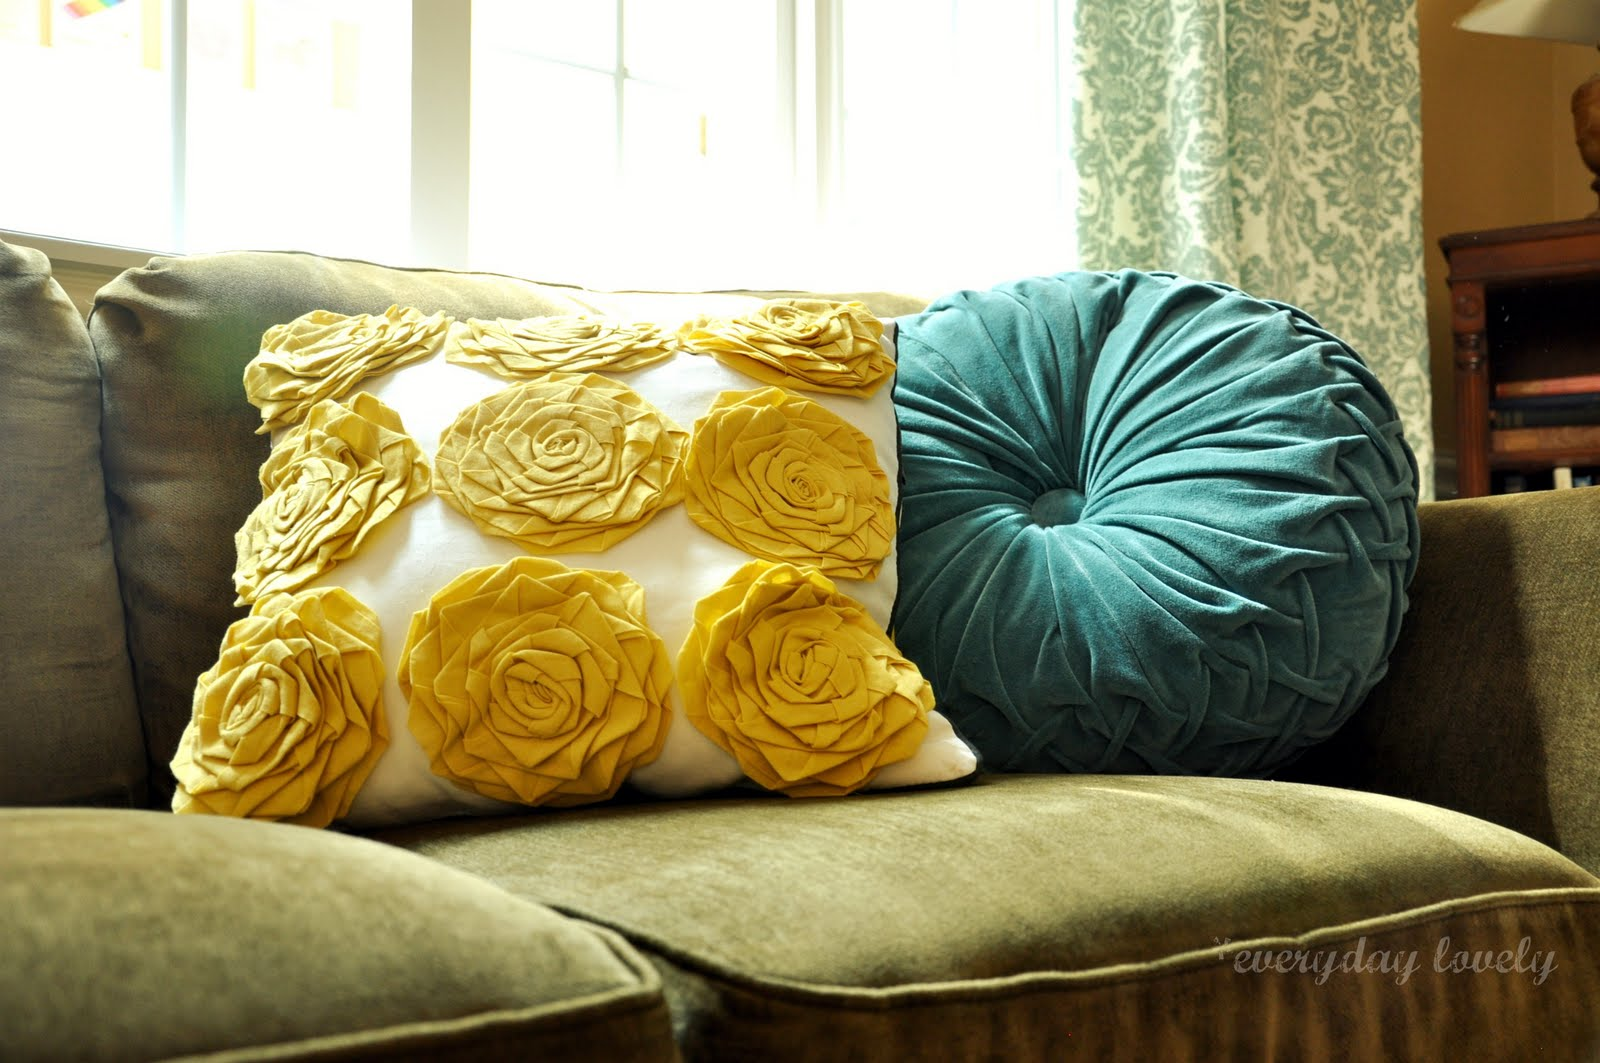 Throw Pillows For A Green Couch : everyday lovely: Pillow Talk